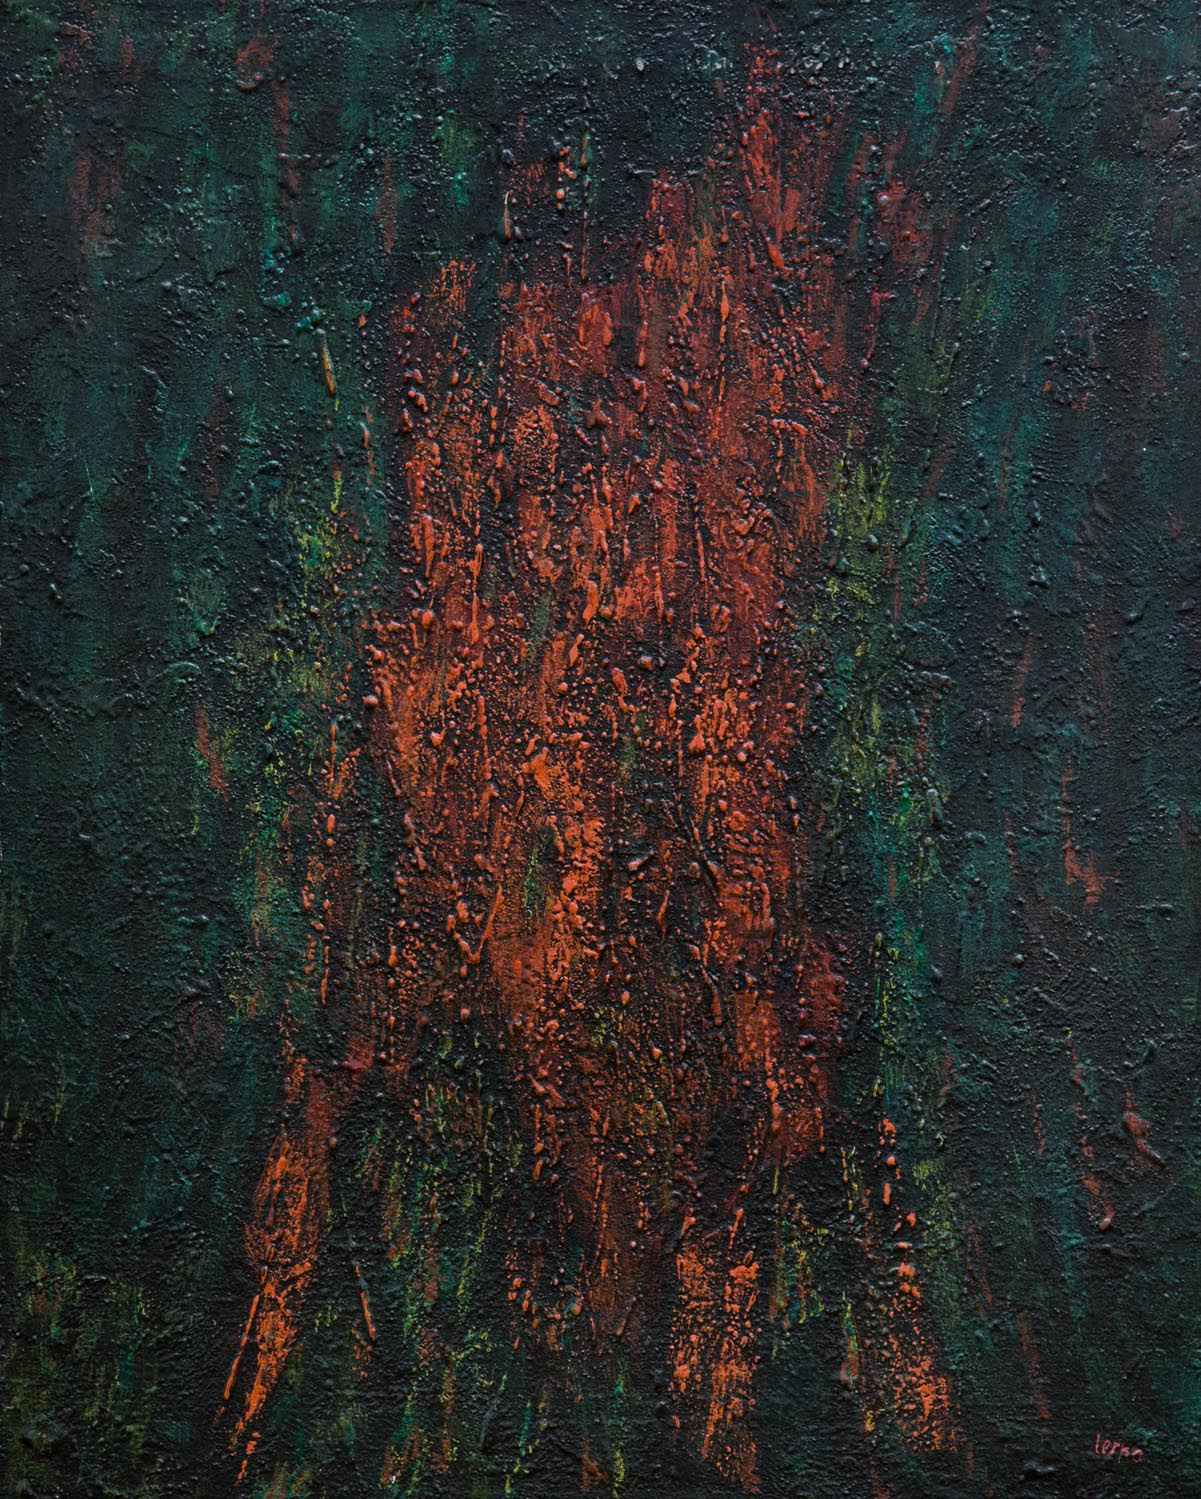 Traces , 2006, Acrylic on canvas, 30 x 24 in